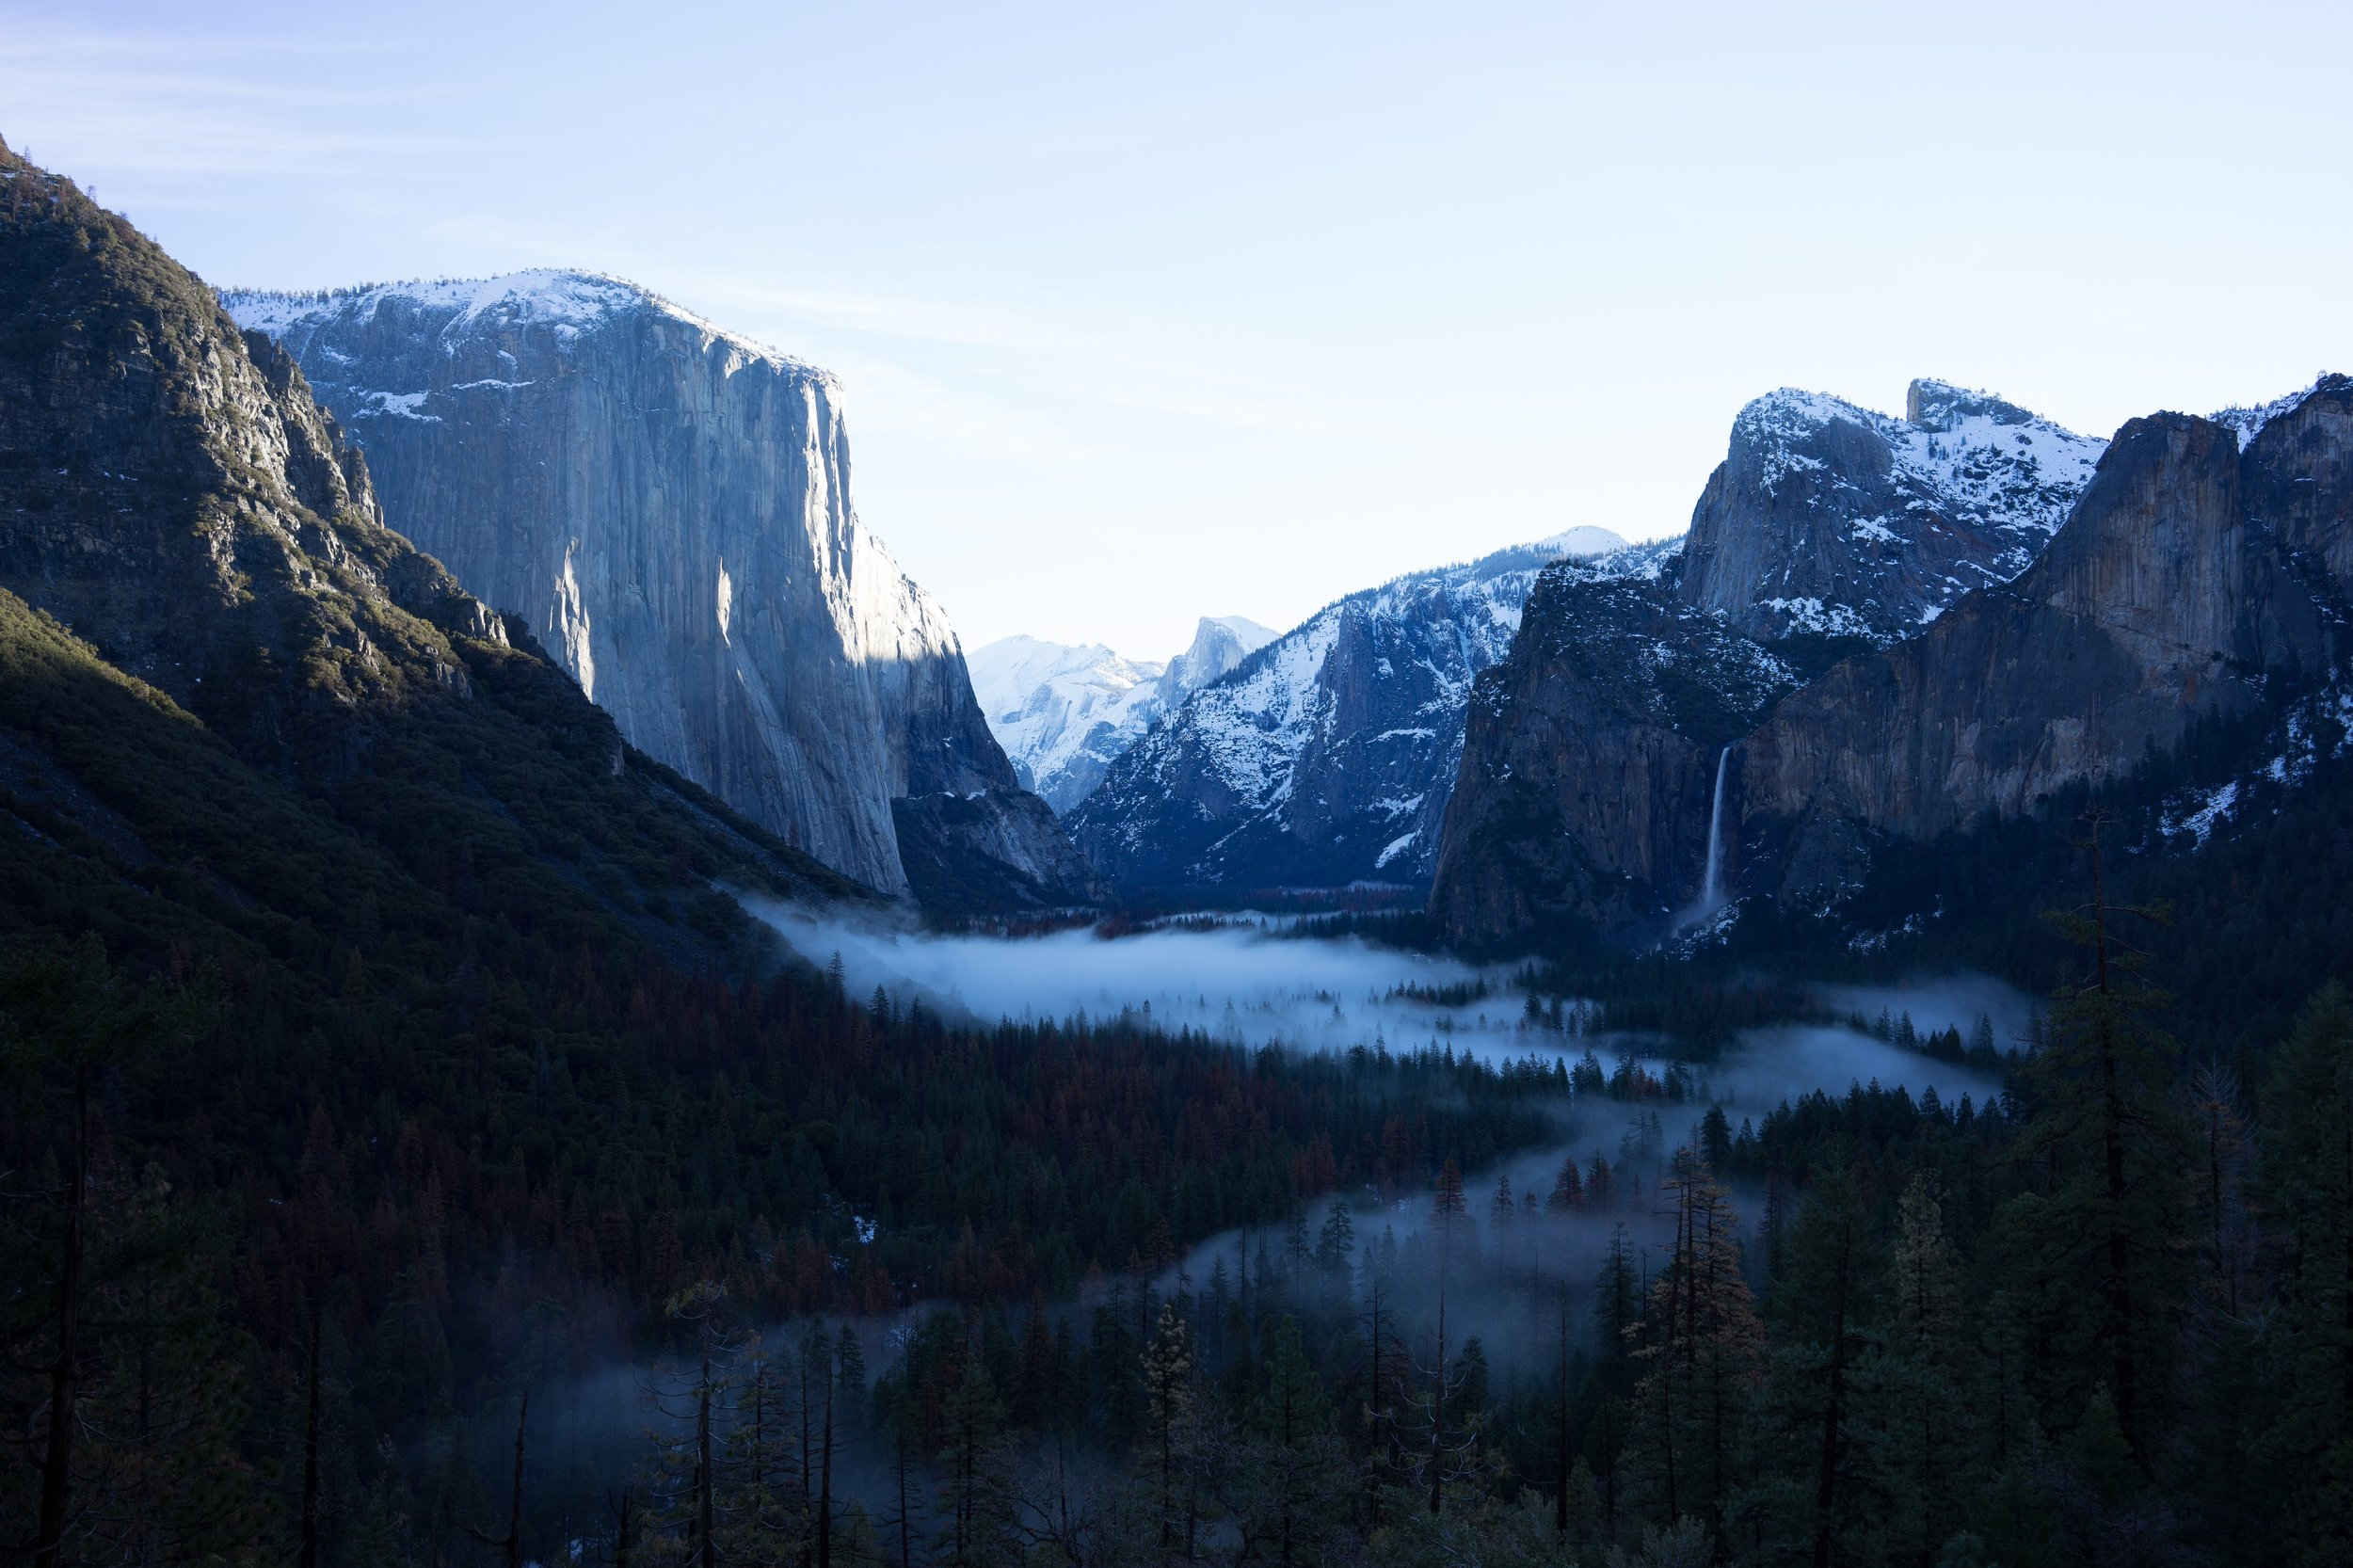 Tunnel view, never gets old and sometimes are better than others